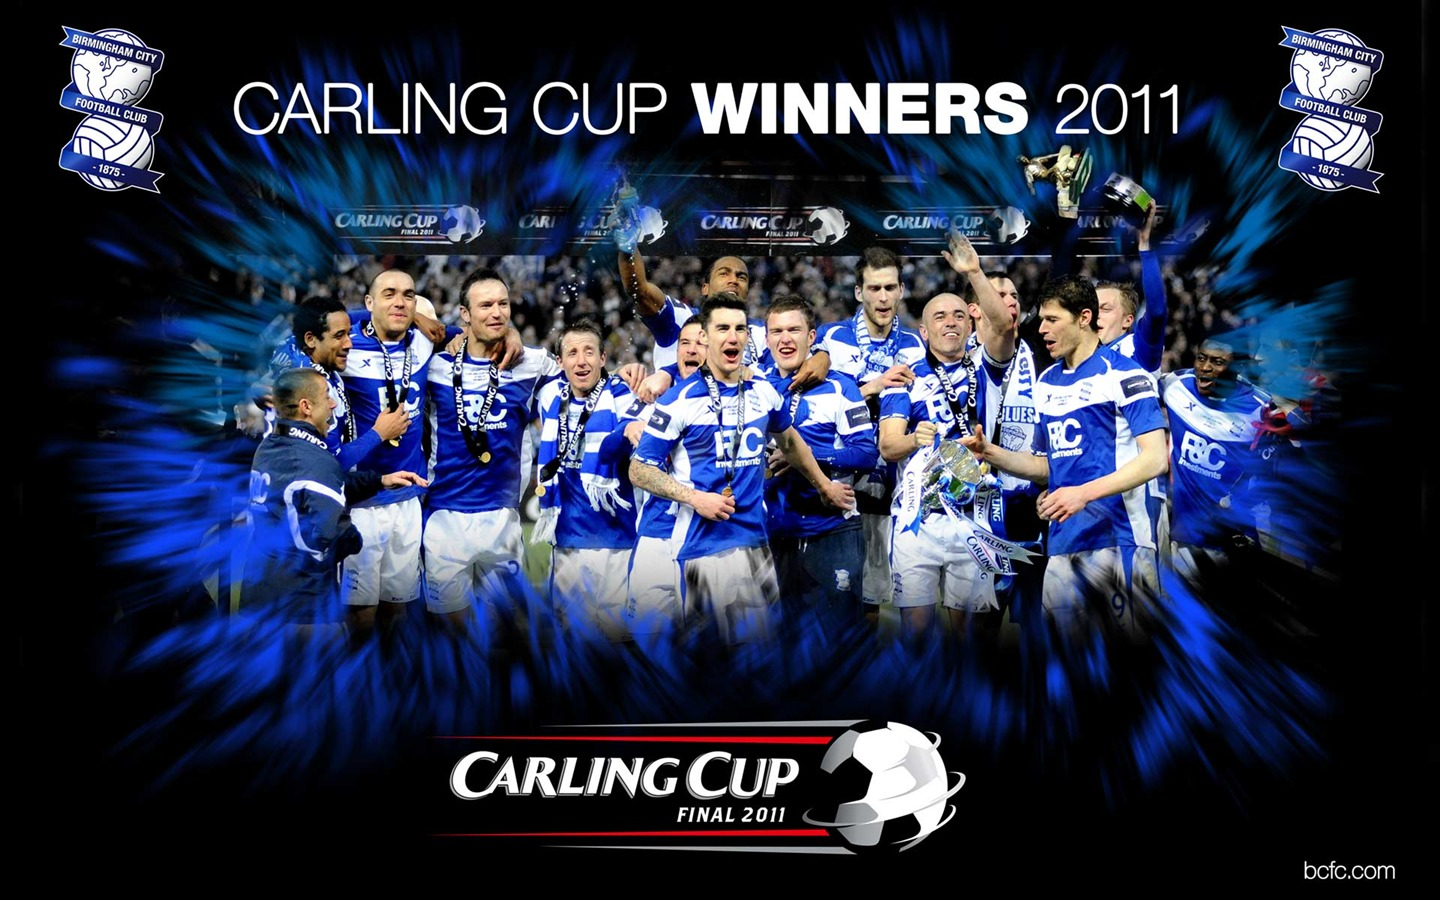 Birmingham City 2010-11 Season Wallpaper